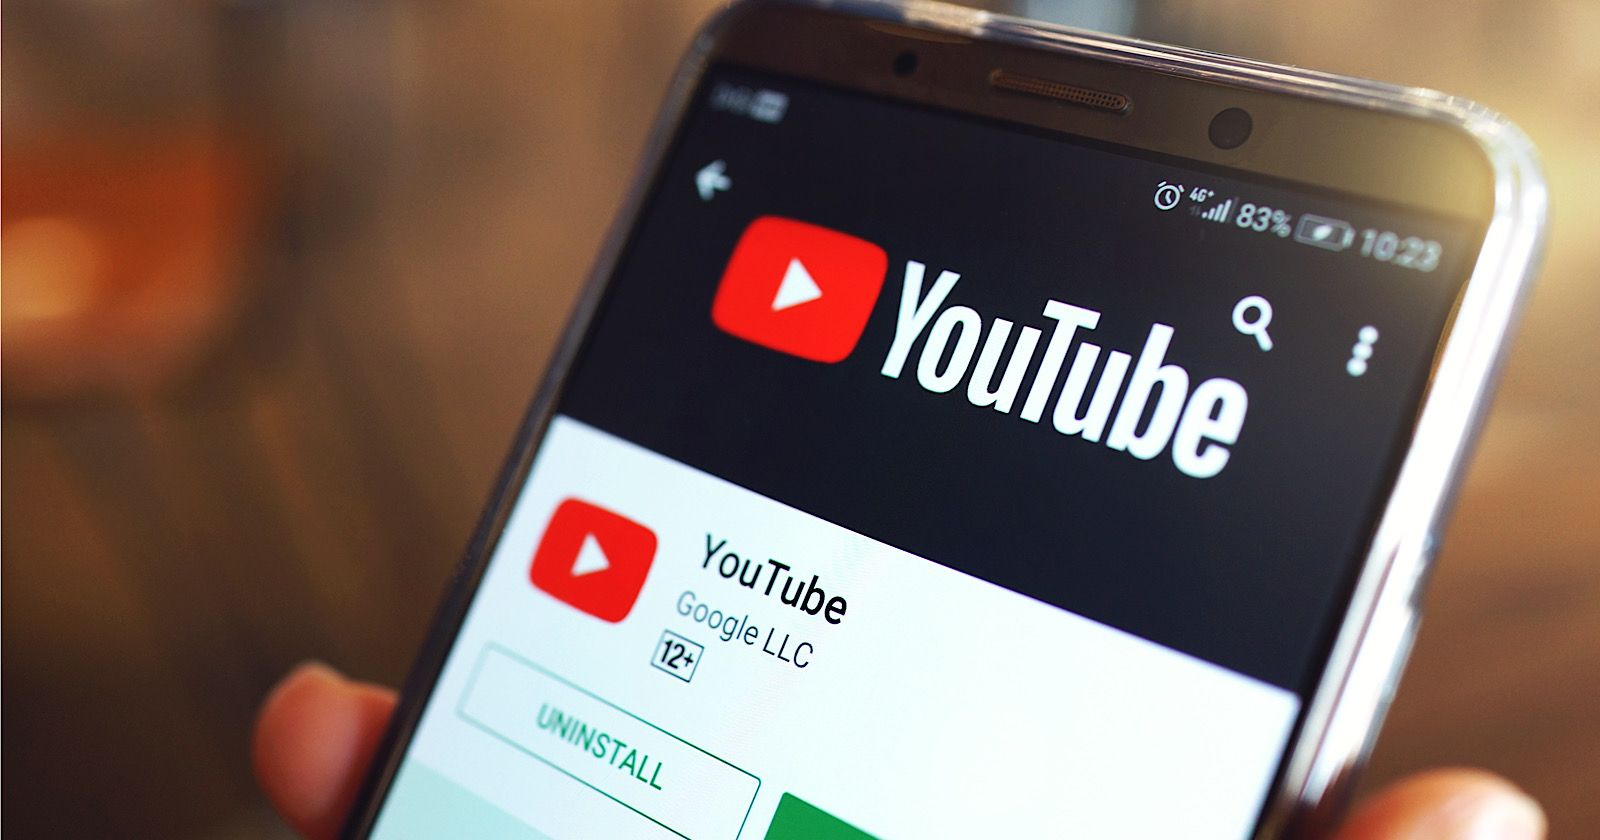 YouTube Replaces the 'Trending' Tab With New 'Explore' Tab